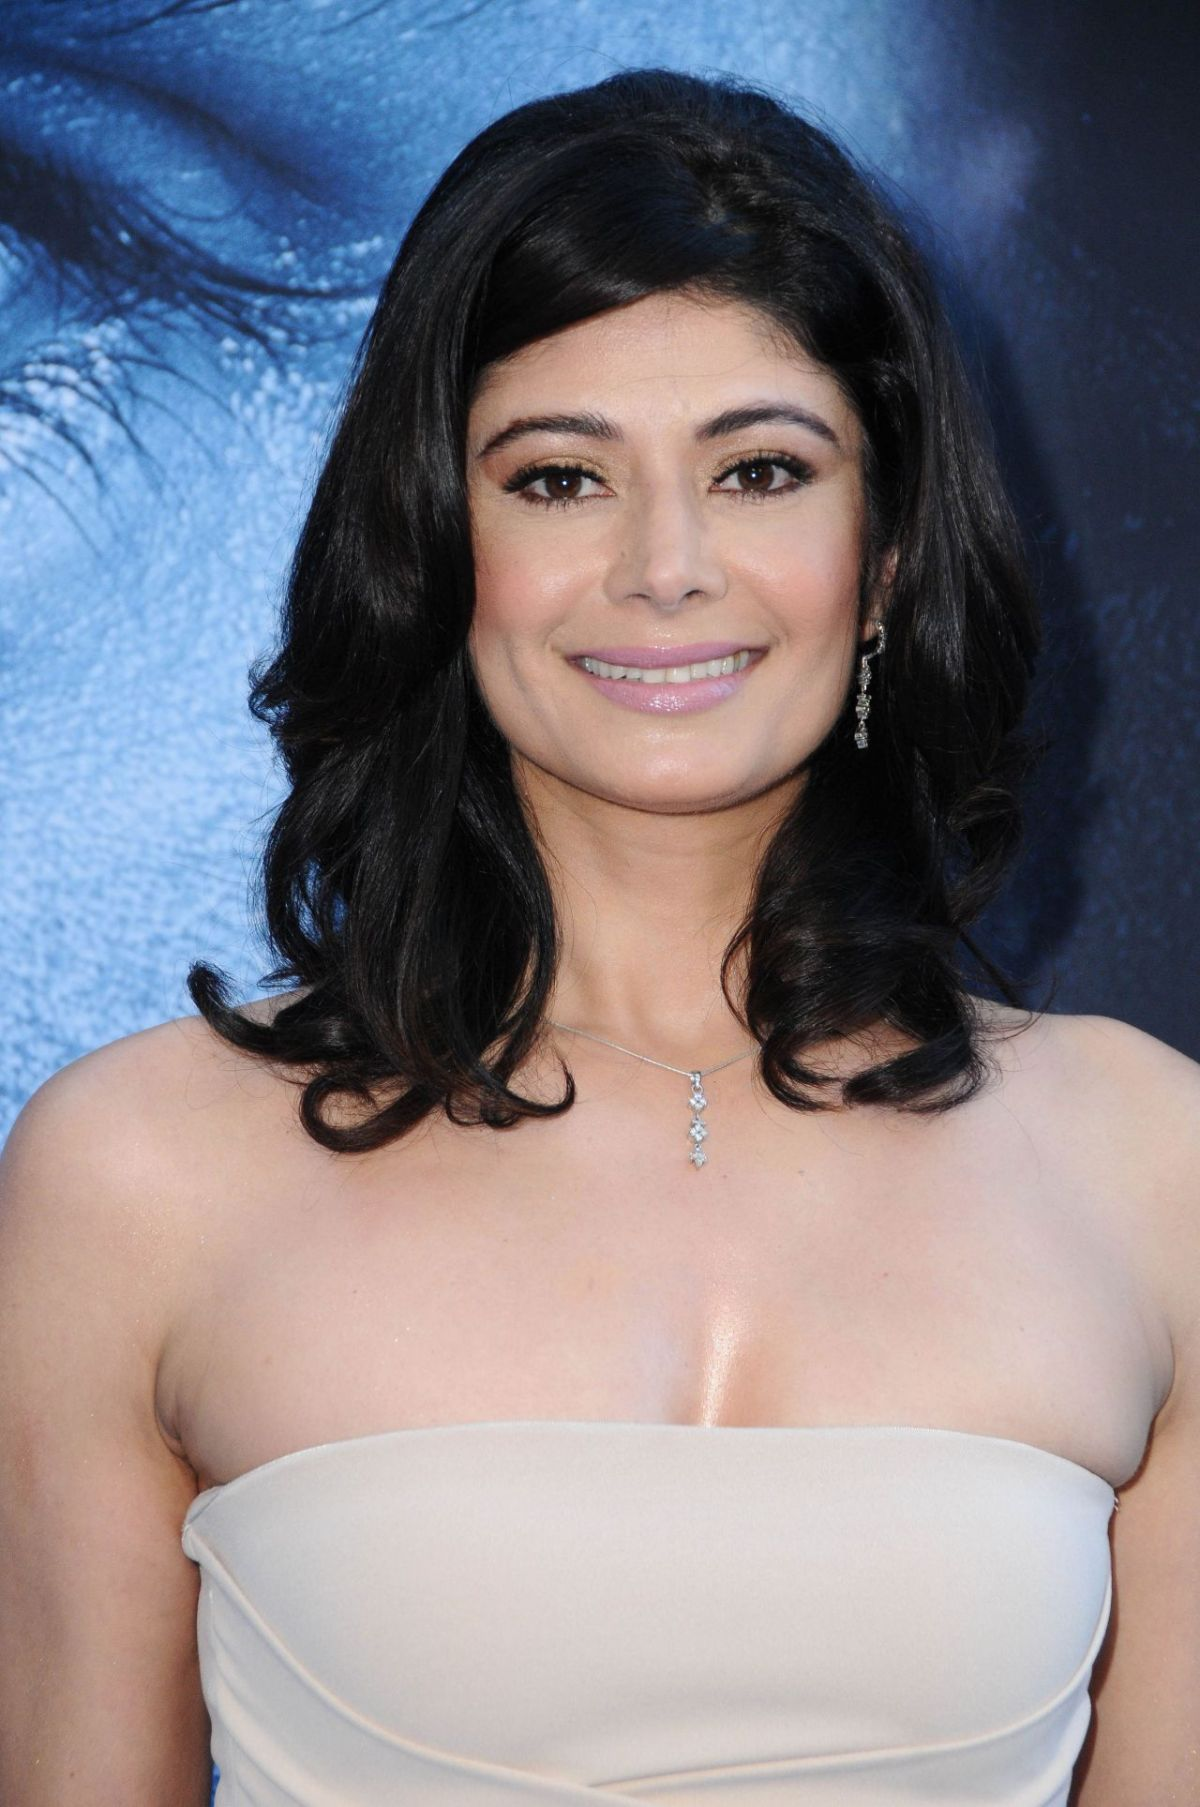 POOJA BATRA at Game of Thrones Season 7 Premiere in Los Angeles 07/12/2017